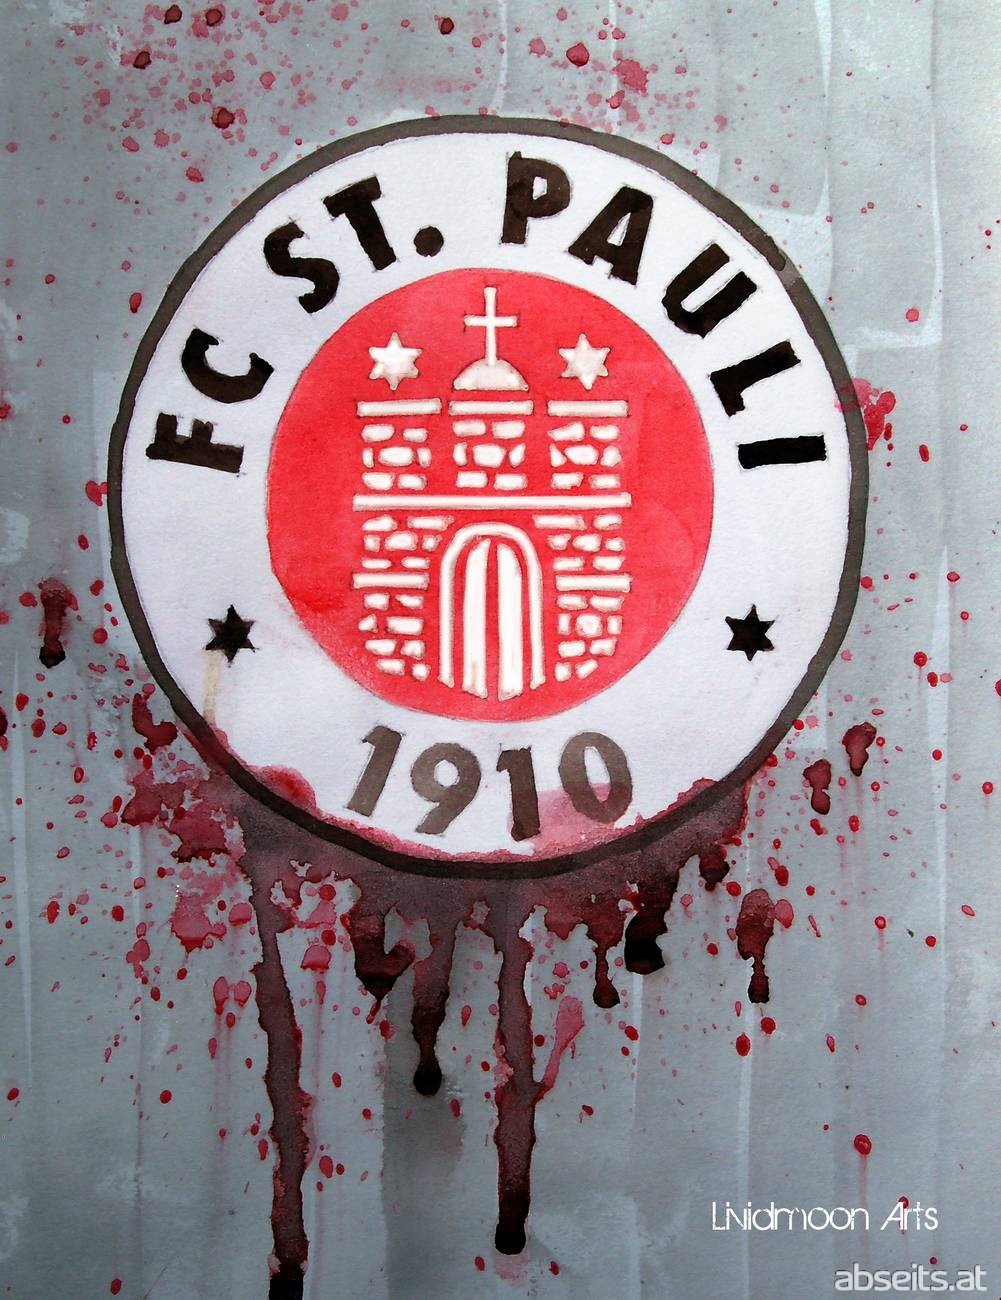 FC St.Pauli Wappen_abseits.at